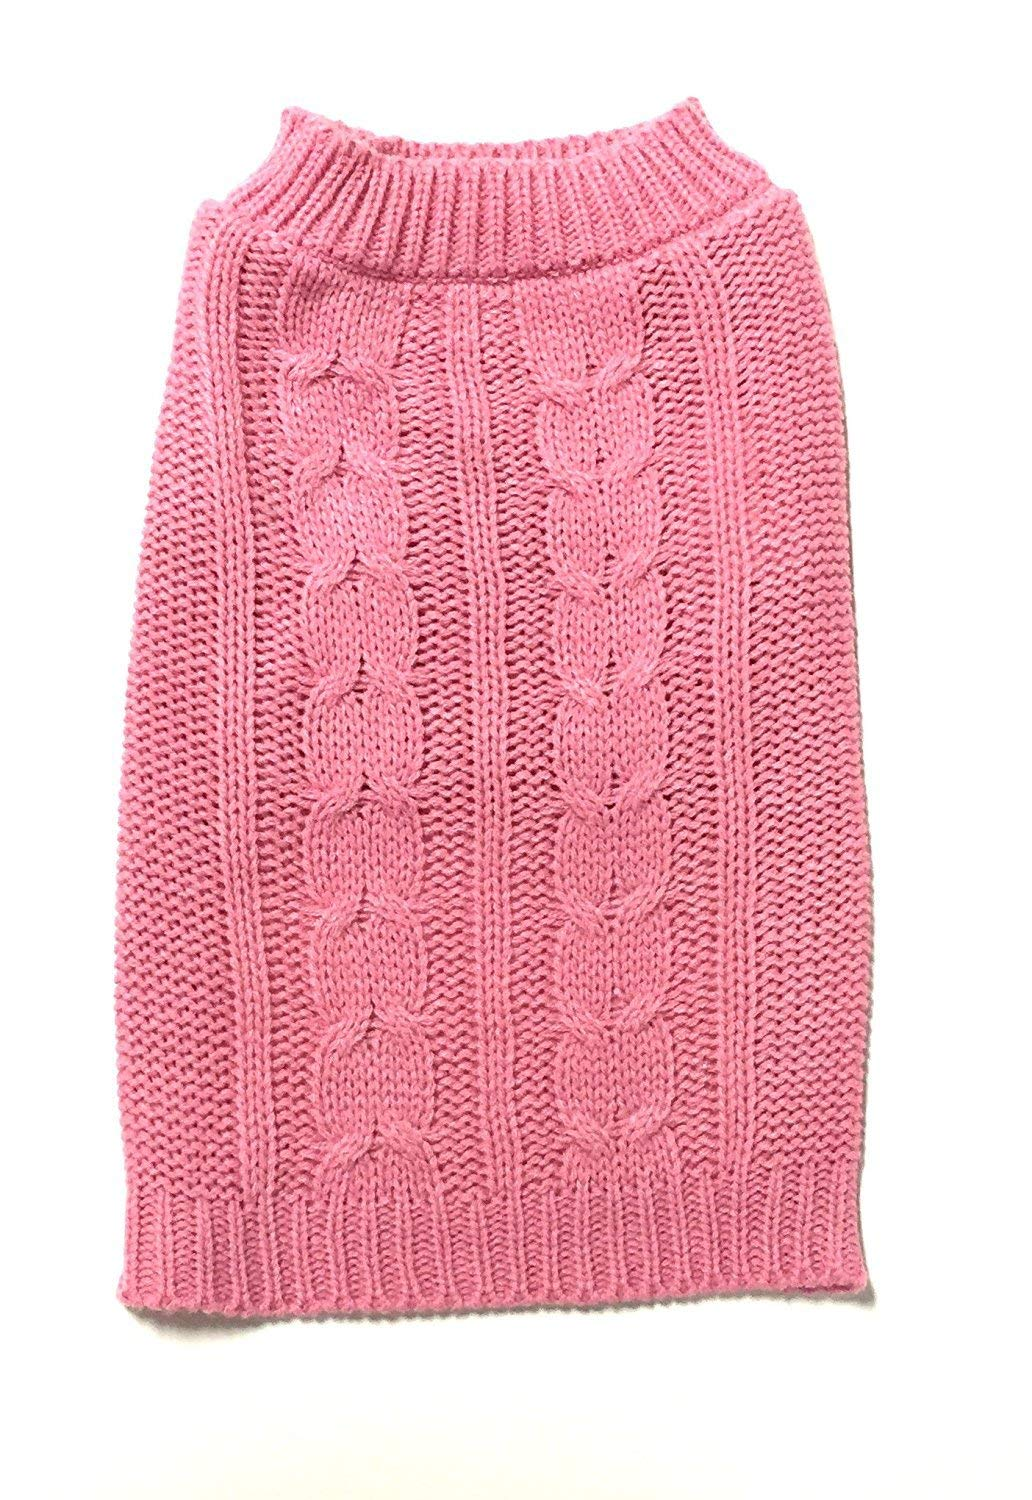 Midlee Cable Knit Dog Sweater by (XX-Large, Pink)